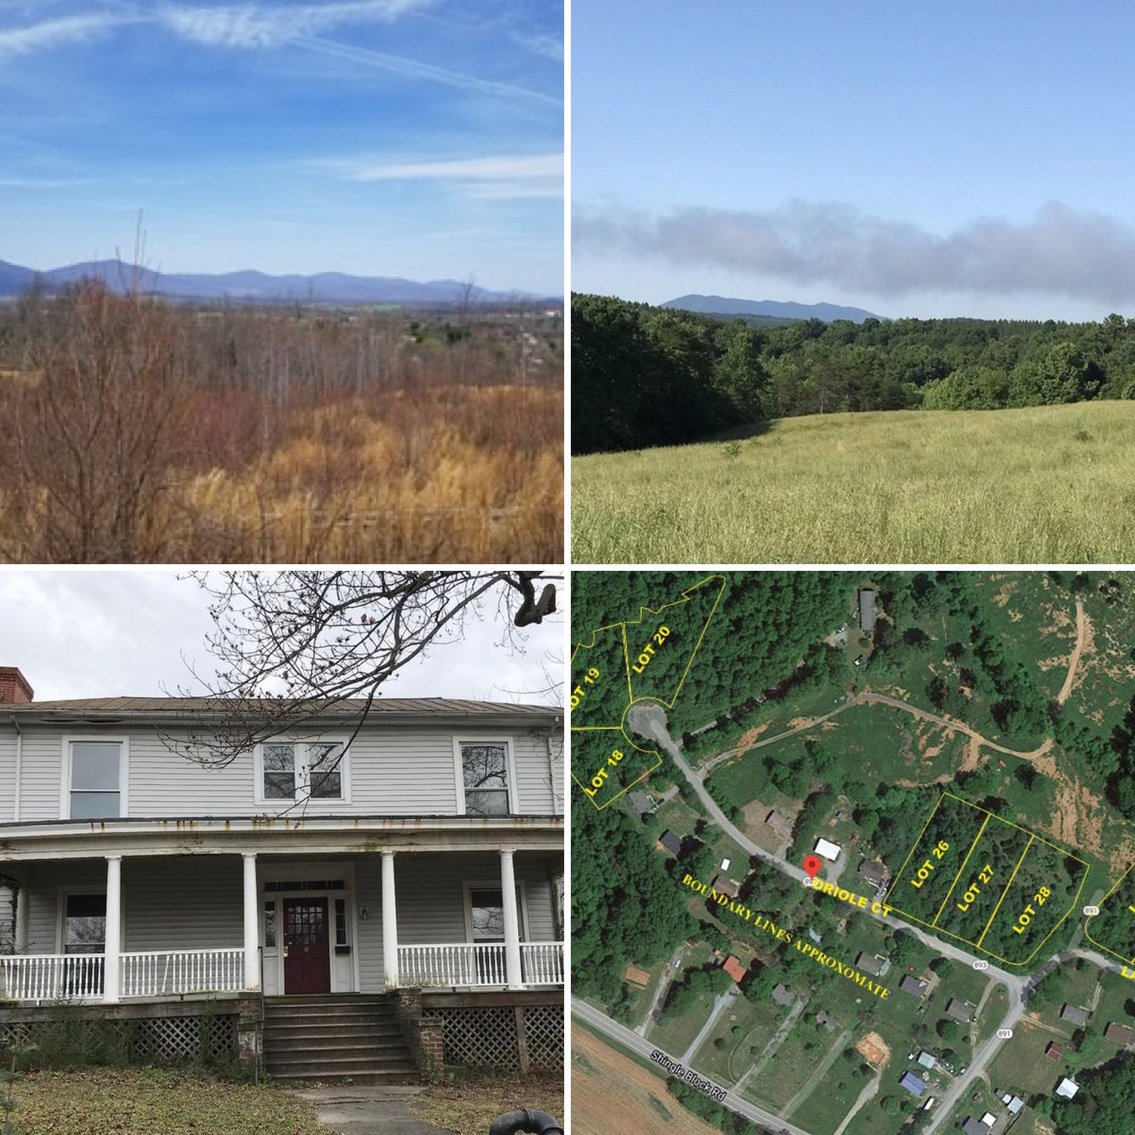 Image for MULTI-PROPERTY REAL ESTATE AUCTION: Including Acreage, Home & Vacant Lots (Bedford, VA)